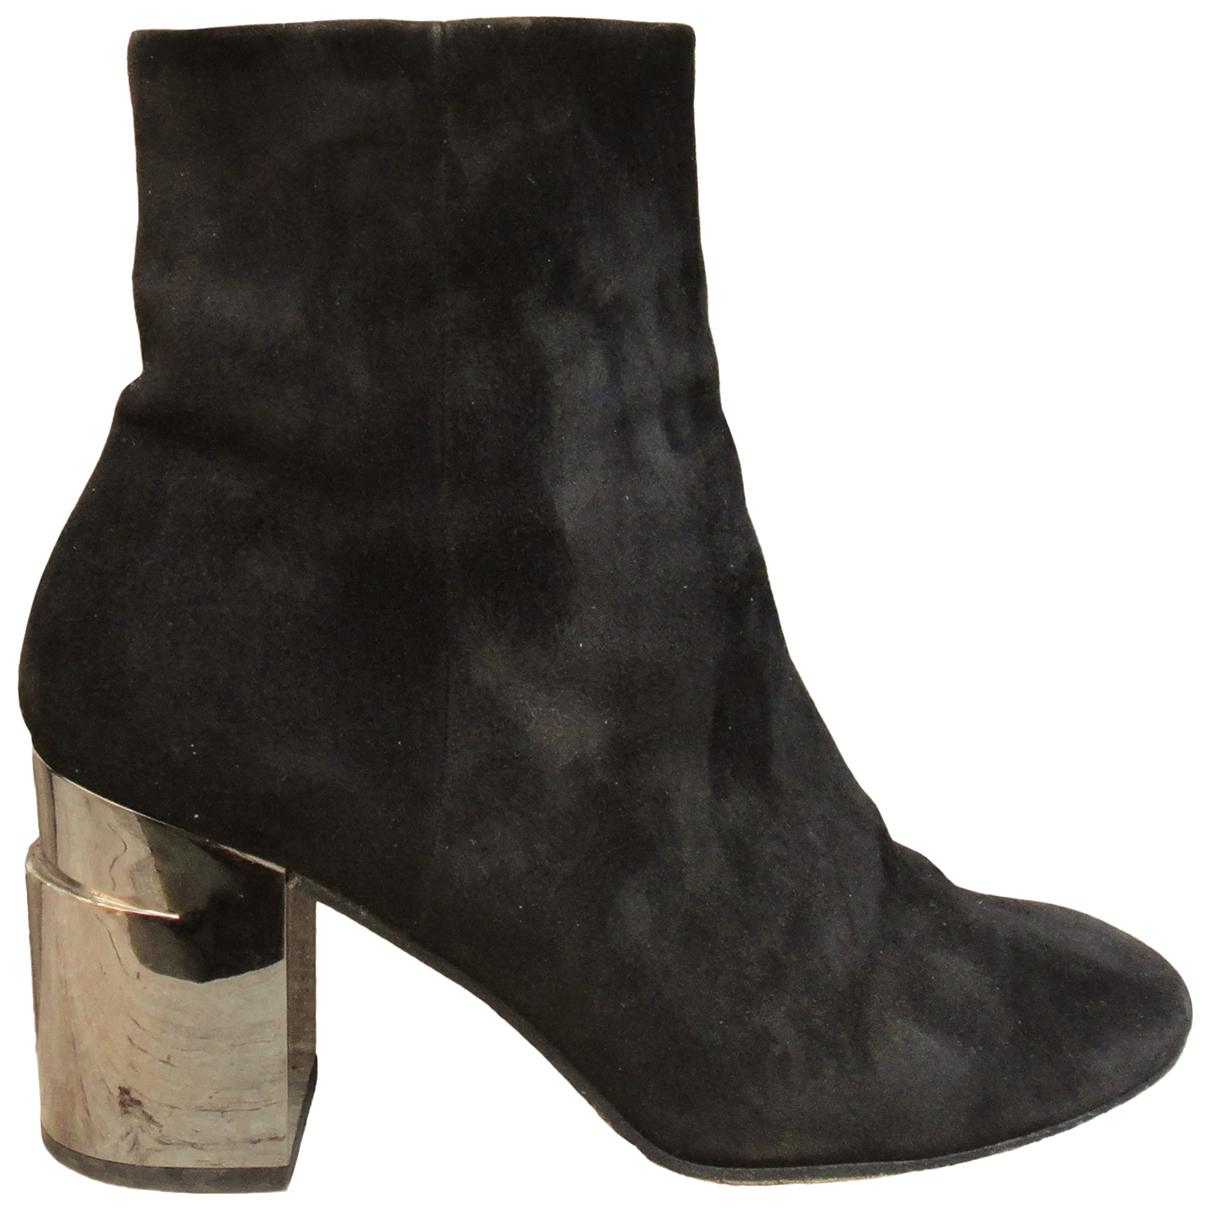 Robert Clergerie \N Black Suede Ankle boots for Women 40 EU